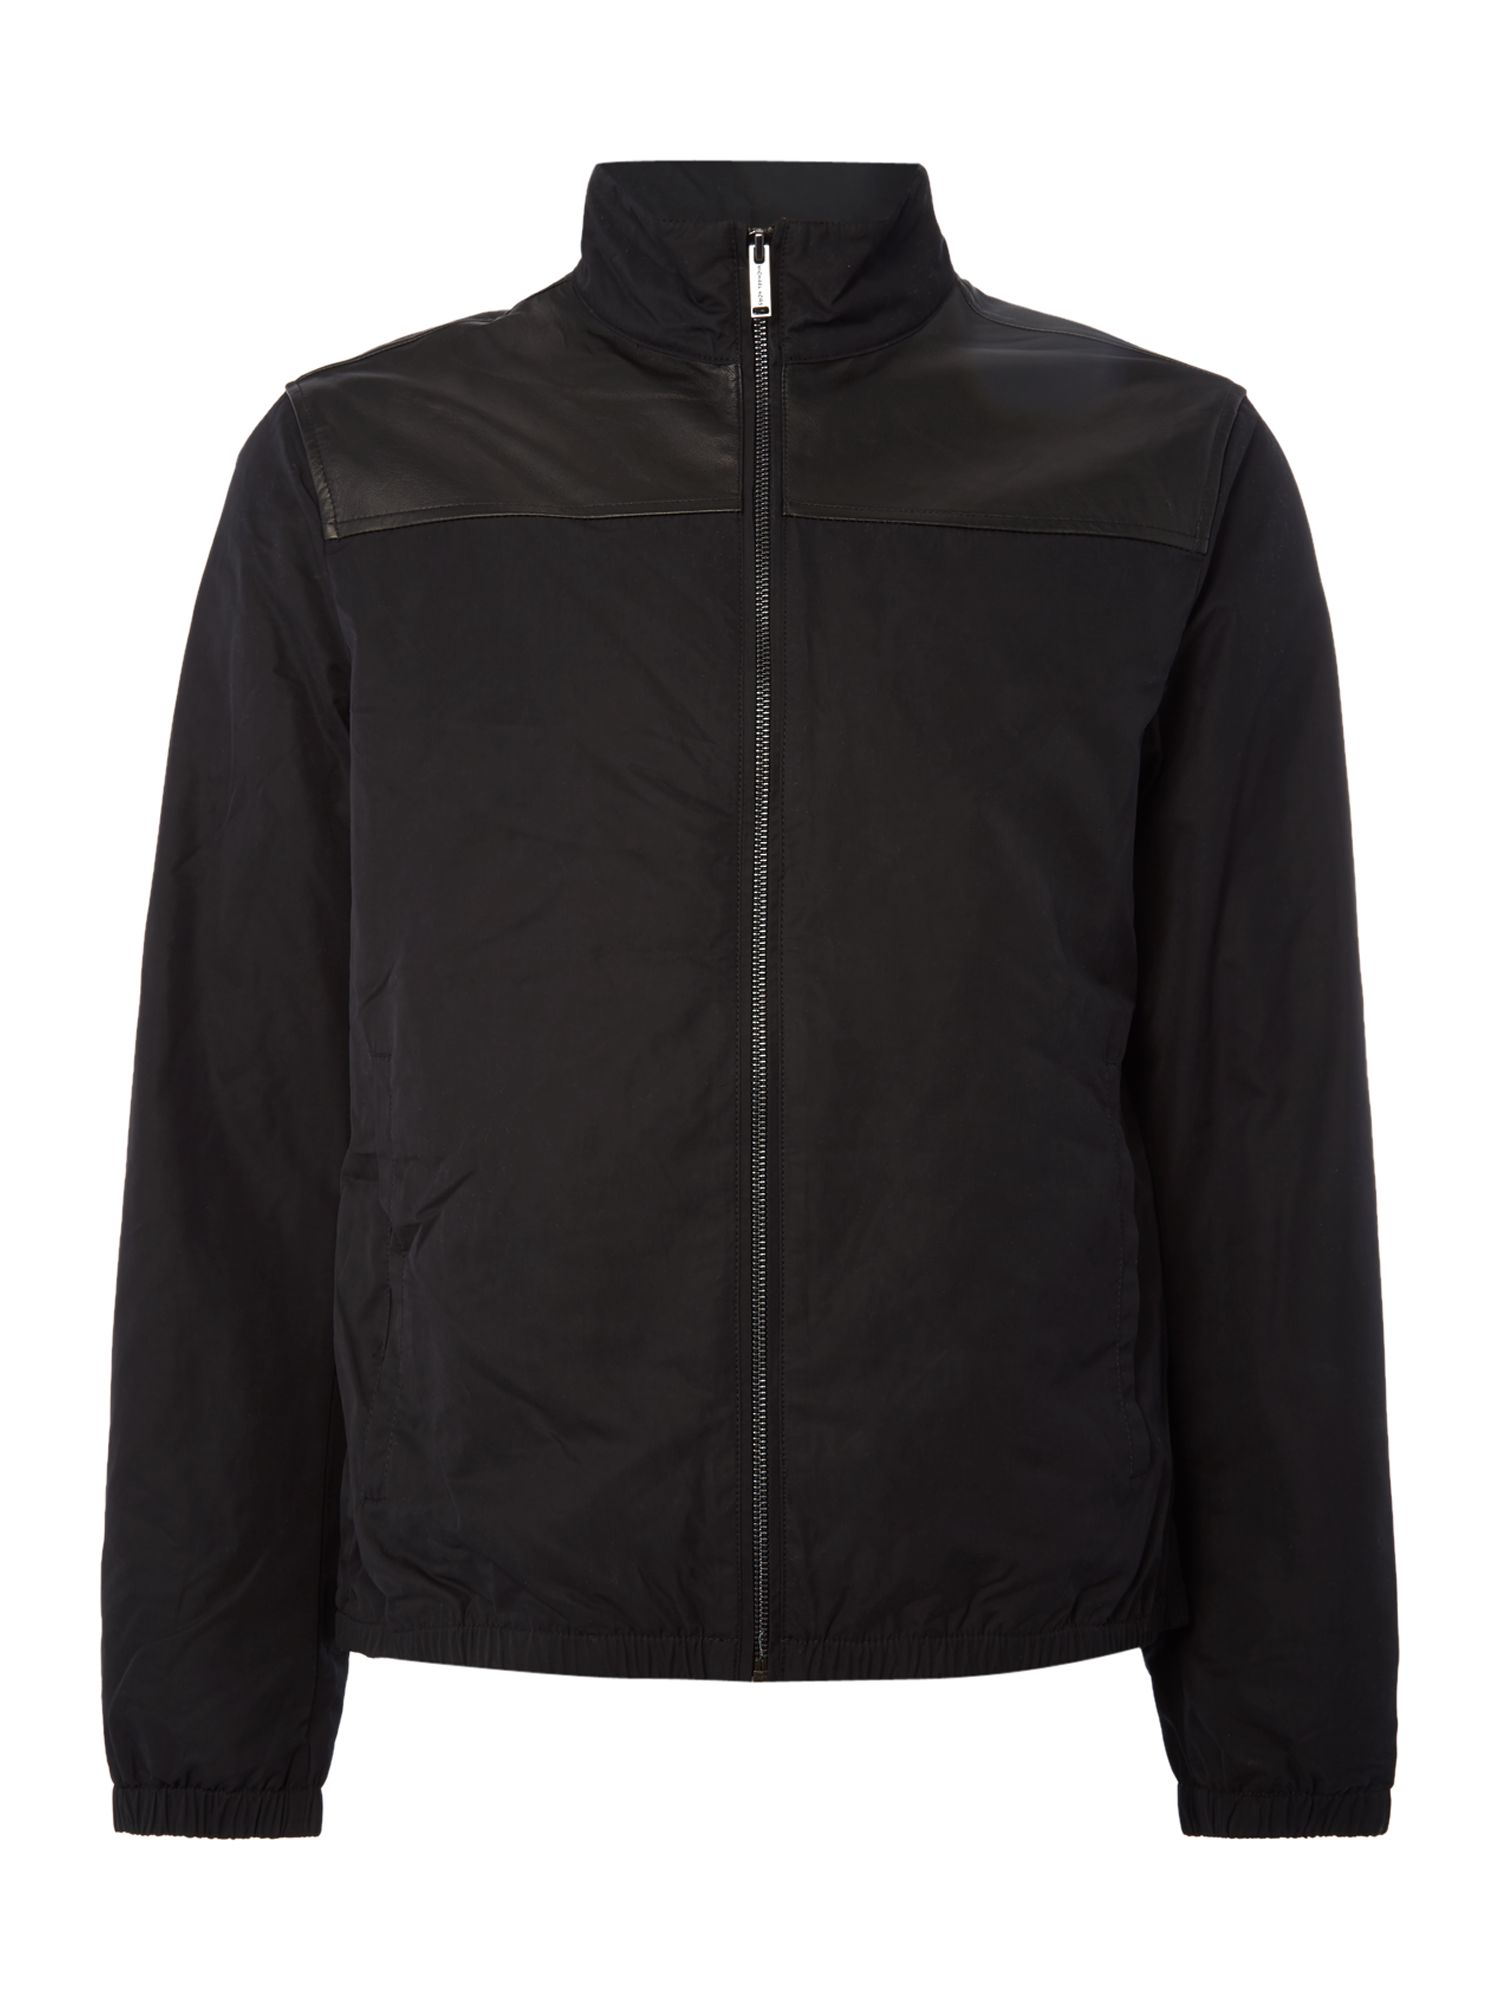 Mens Michael Kors Leather and nylon mix harrington jacket Black